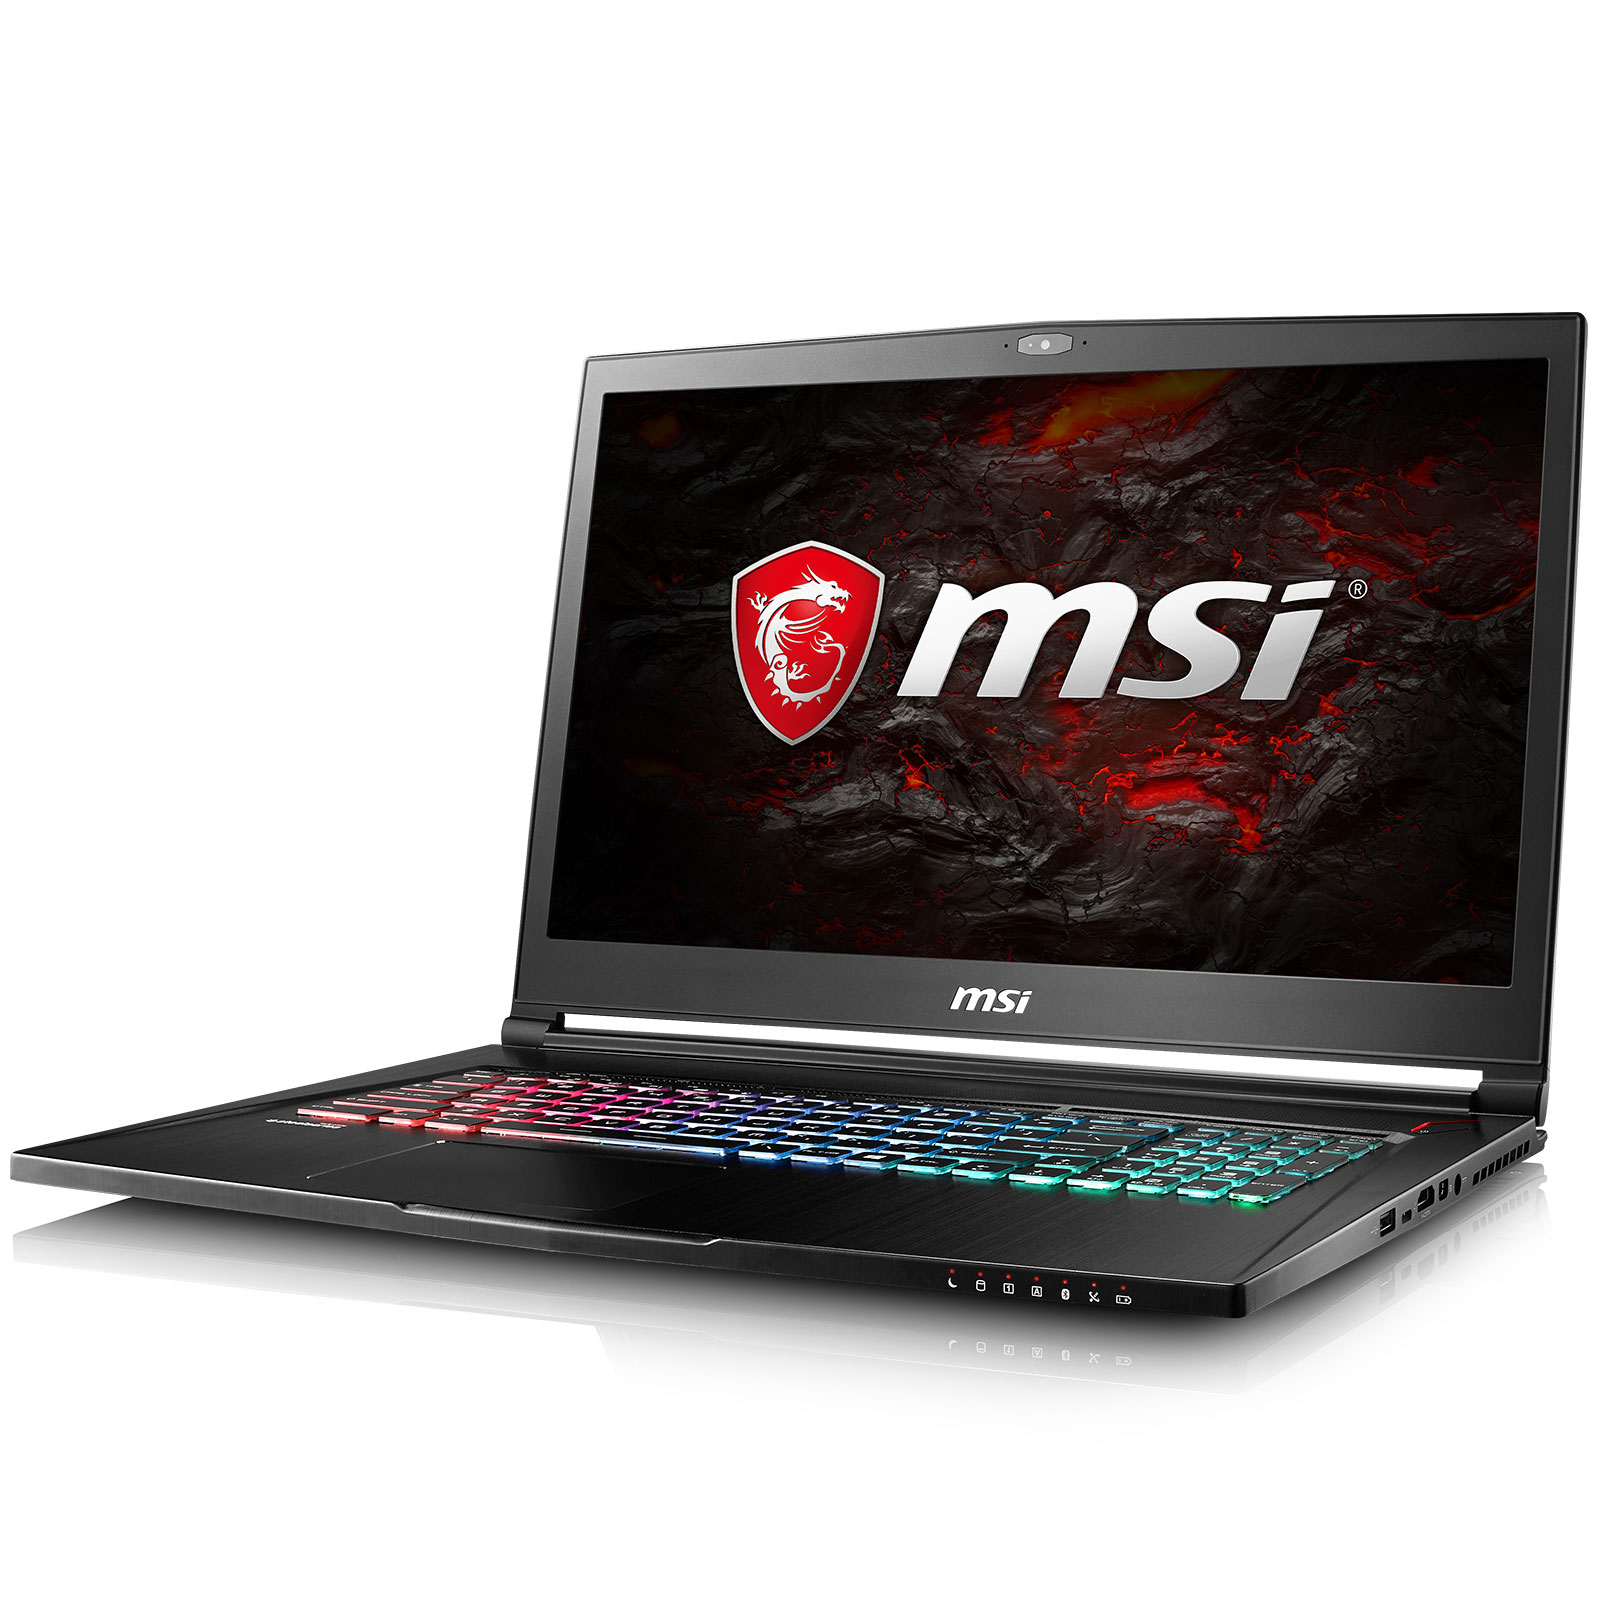 msi gs73vr stealth pro